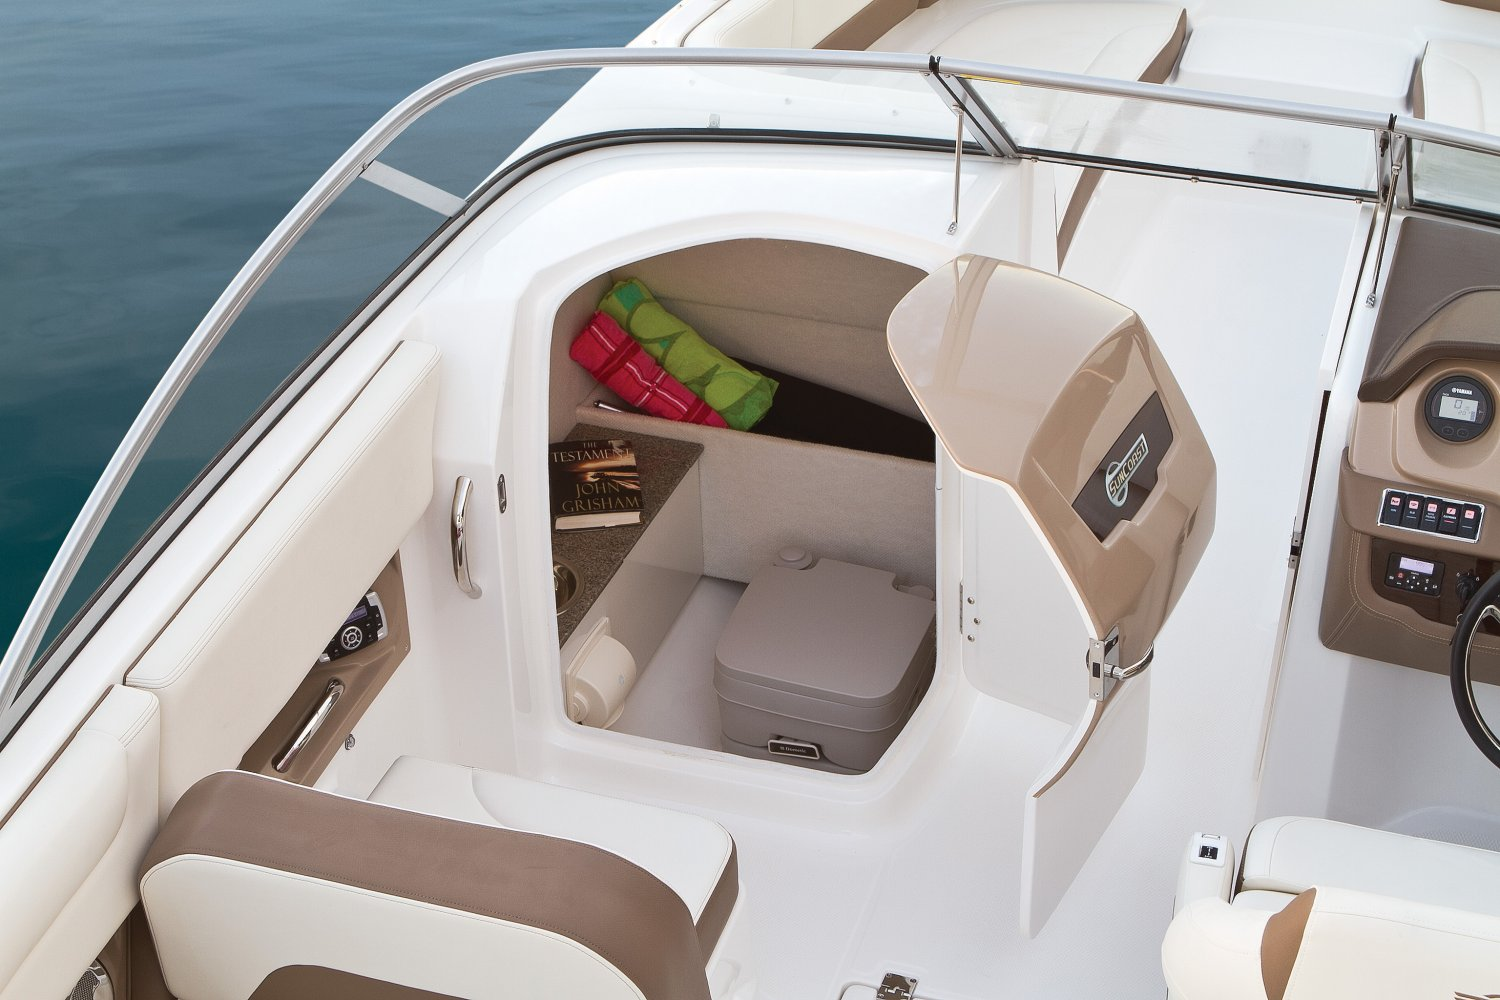 2018 Chaparral 250 Suncoast Top Speed Boat Fuse Box